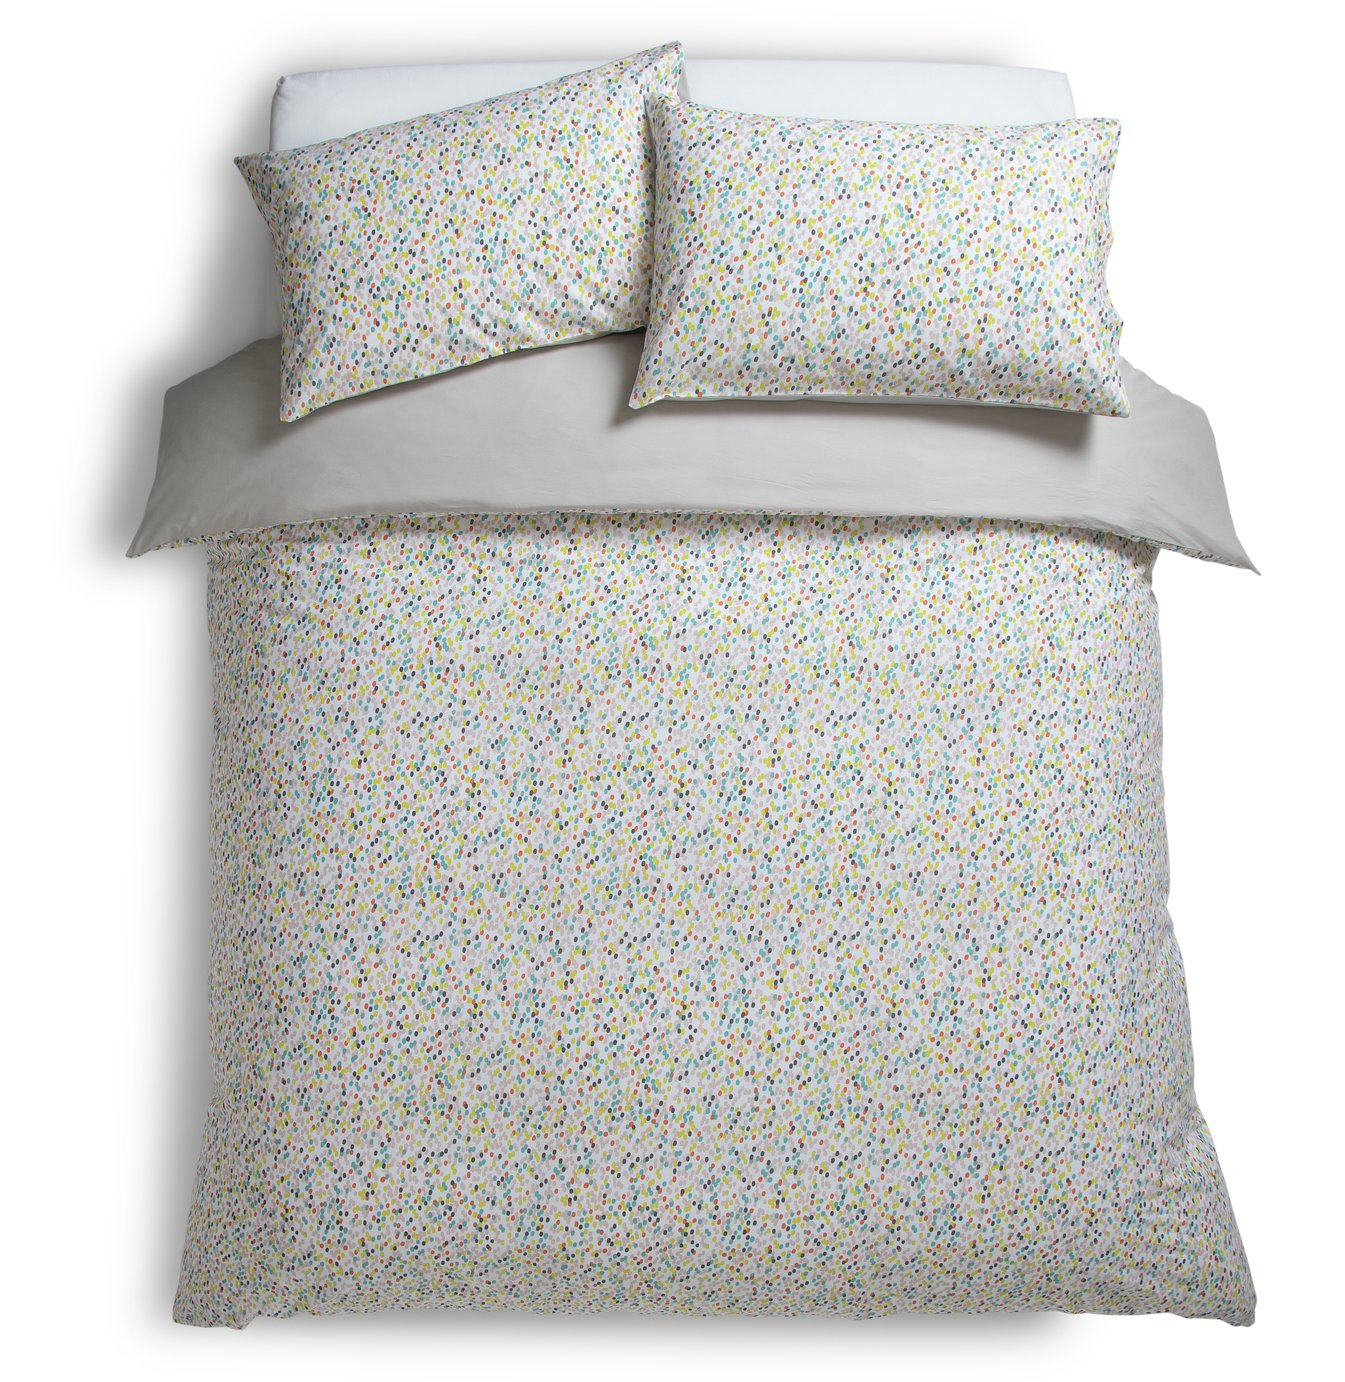 Habitat Angelica Dots Bedding Set - Double